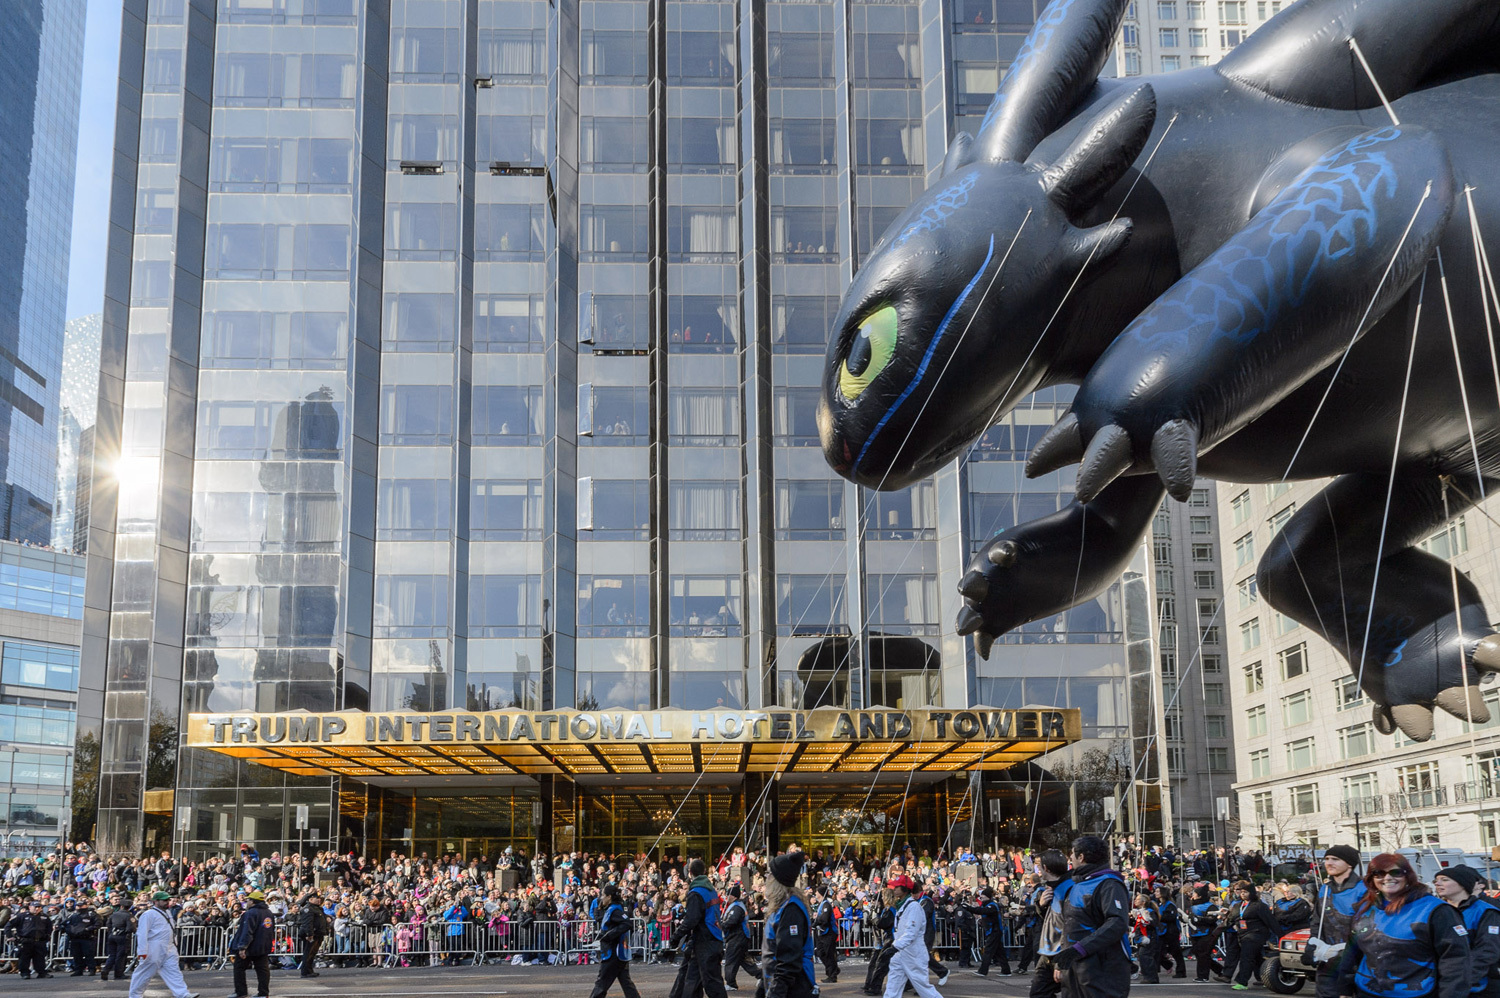 Extra security is coming to this year's Macy's Thanksgiving Day Parade